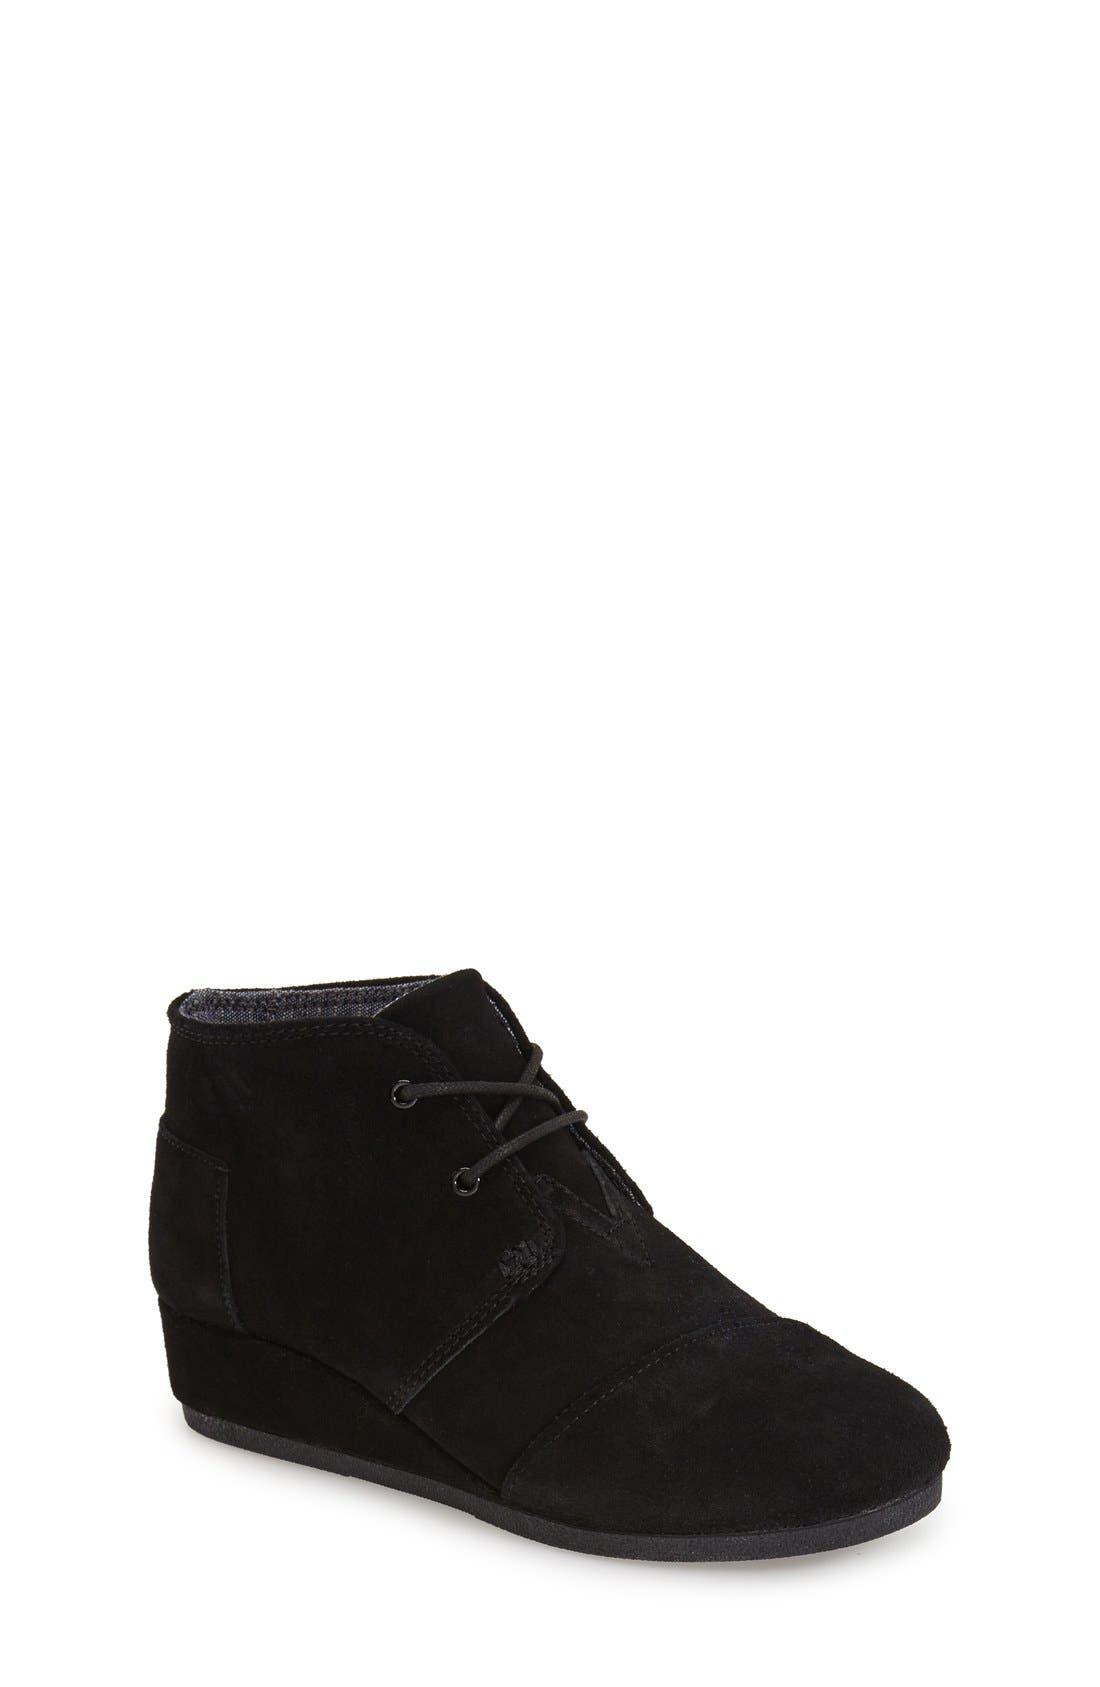 TOMS 'Desert - Youth' Wedge Bootie (Toddler, Little Kid & Big Kid)